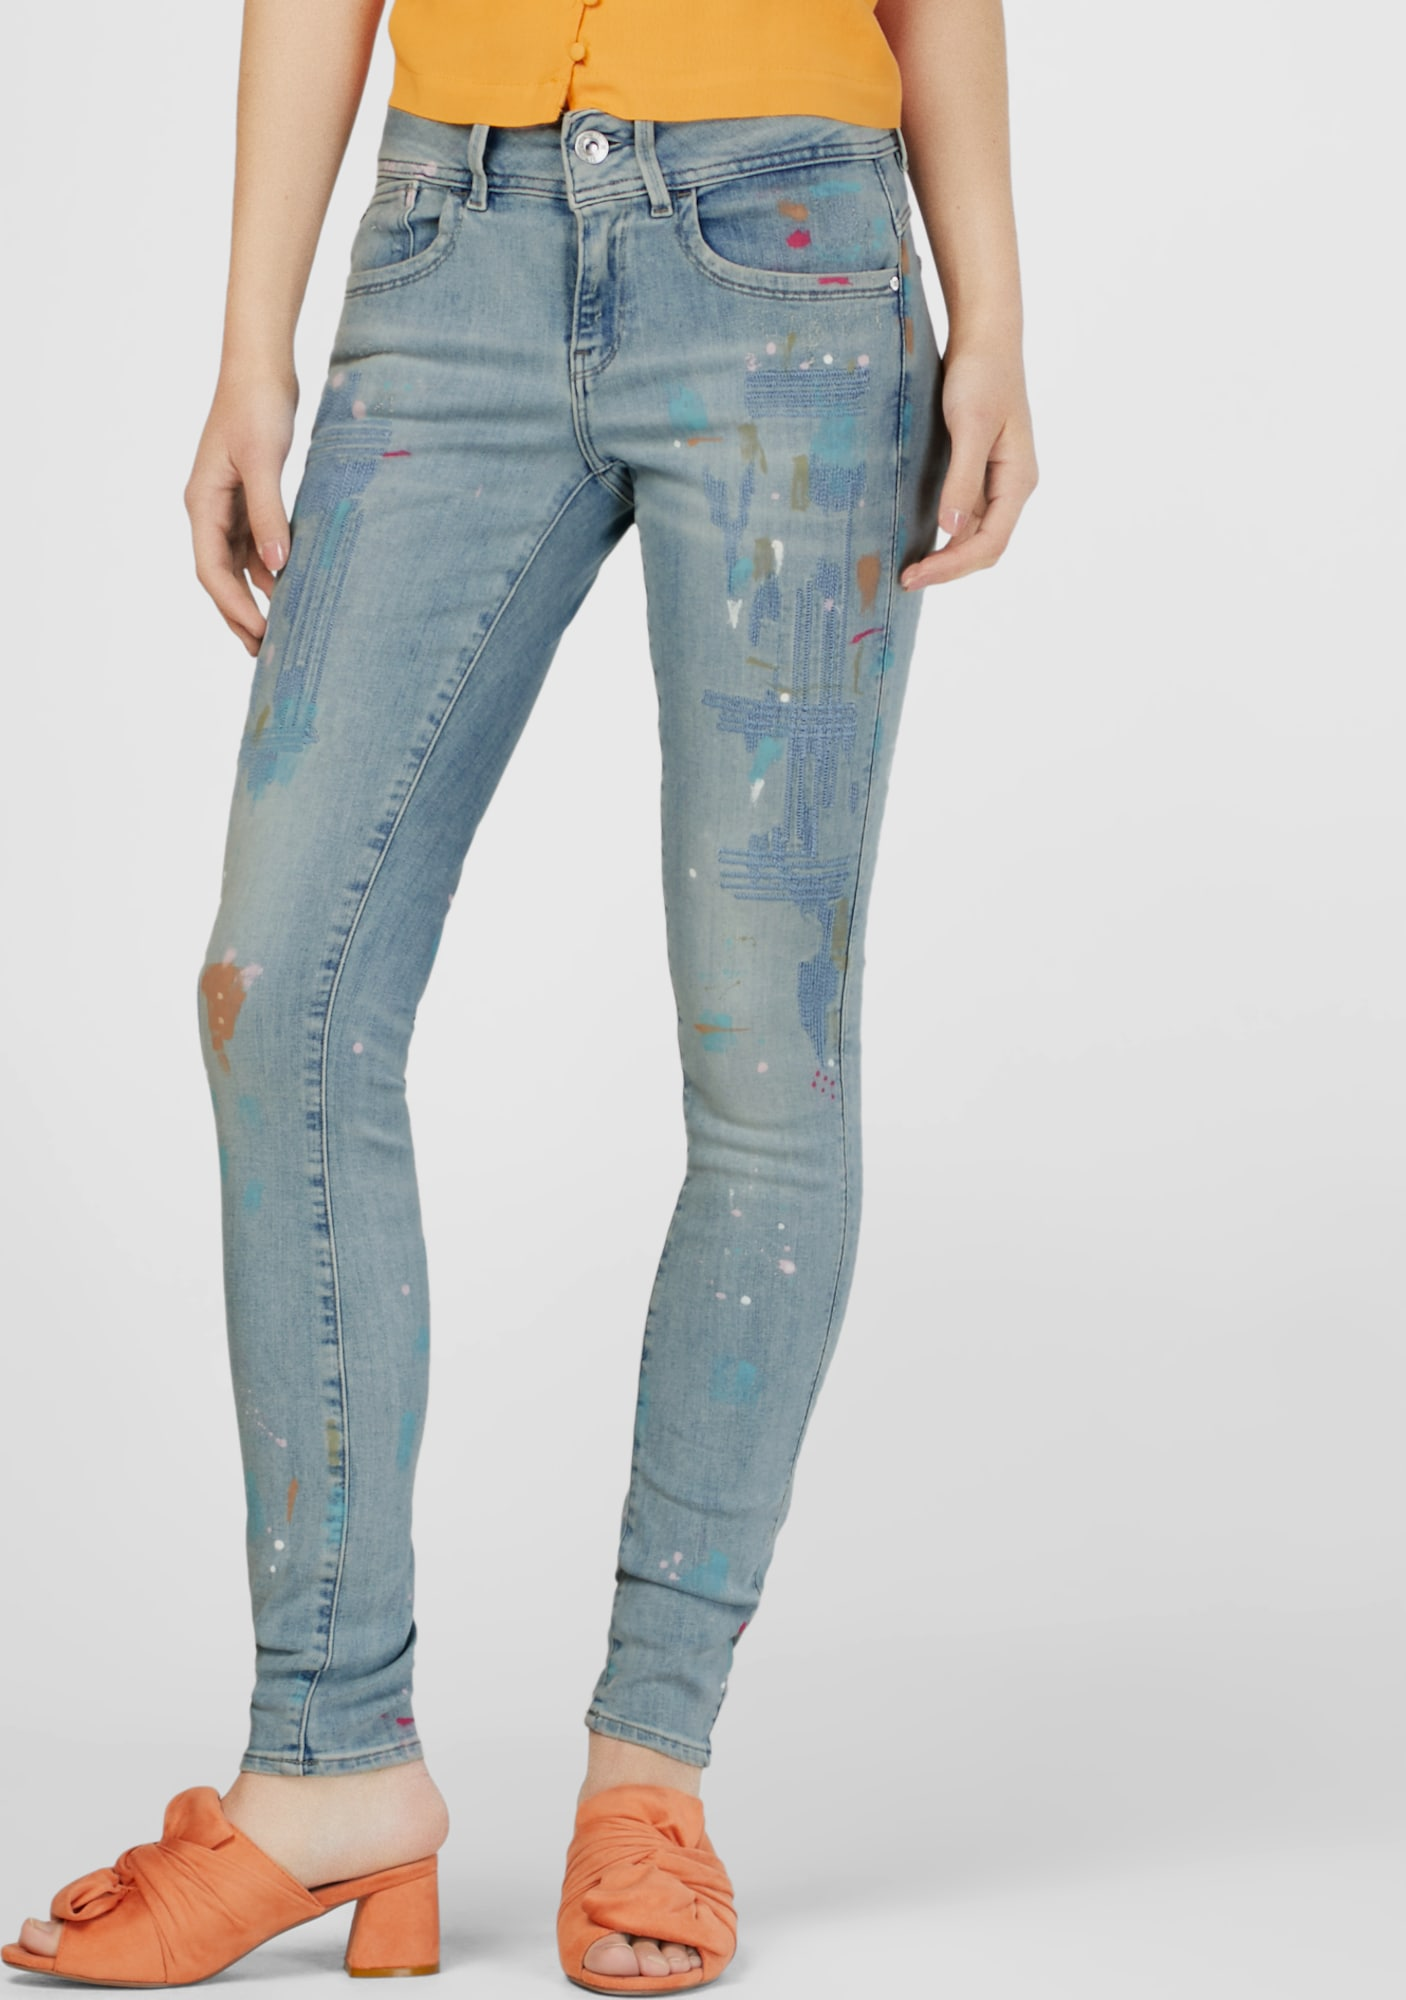 Citaten Weergeven Jeans : G star raw jeans lynn b mid skinny wmn in blauw about you